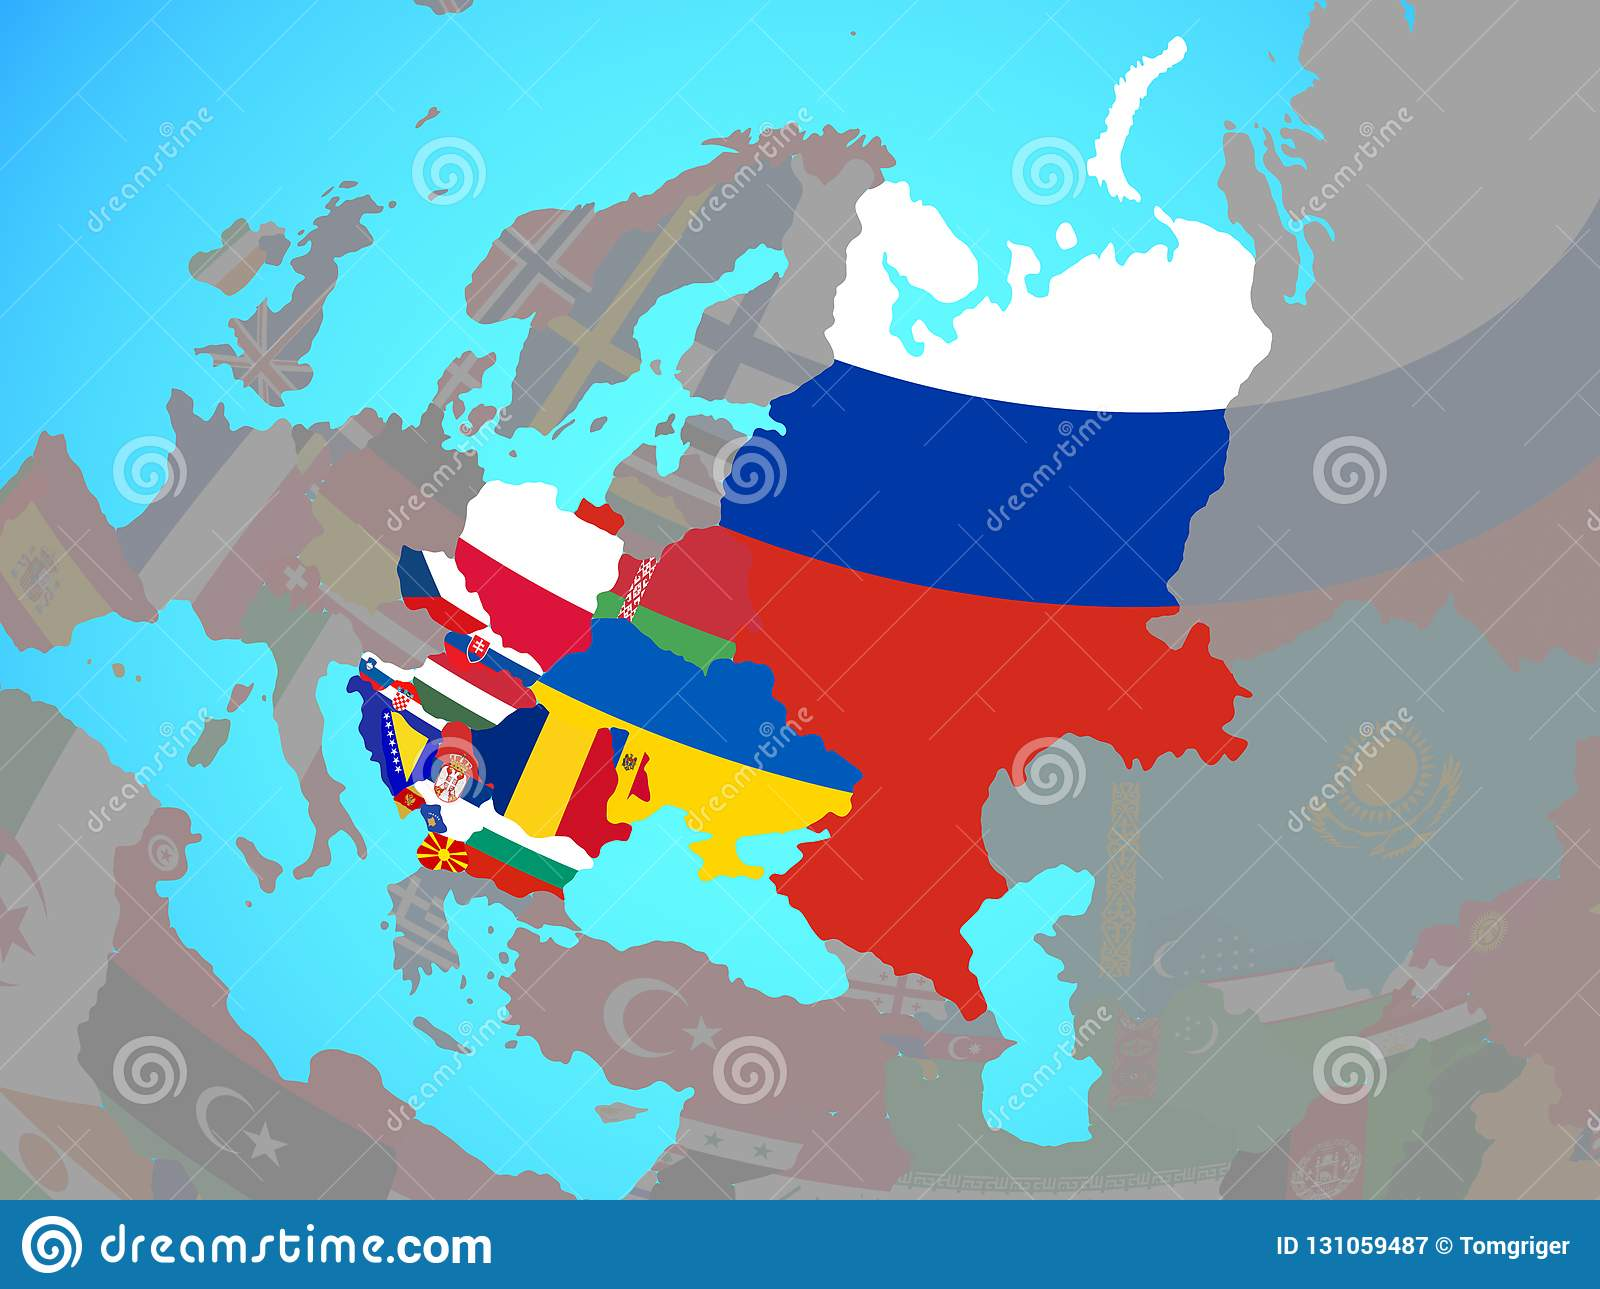 Eastern Europe With Flags On Map Stock Illustration ...